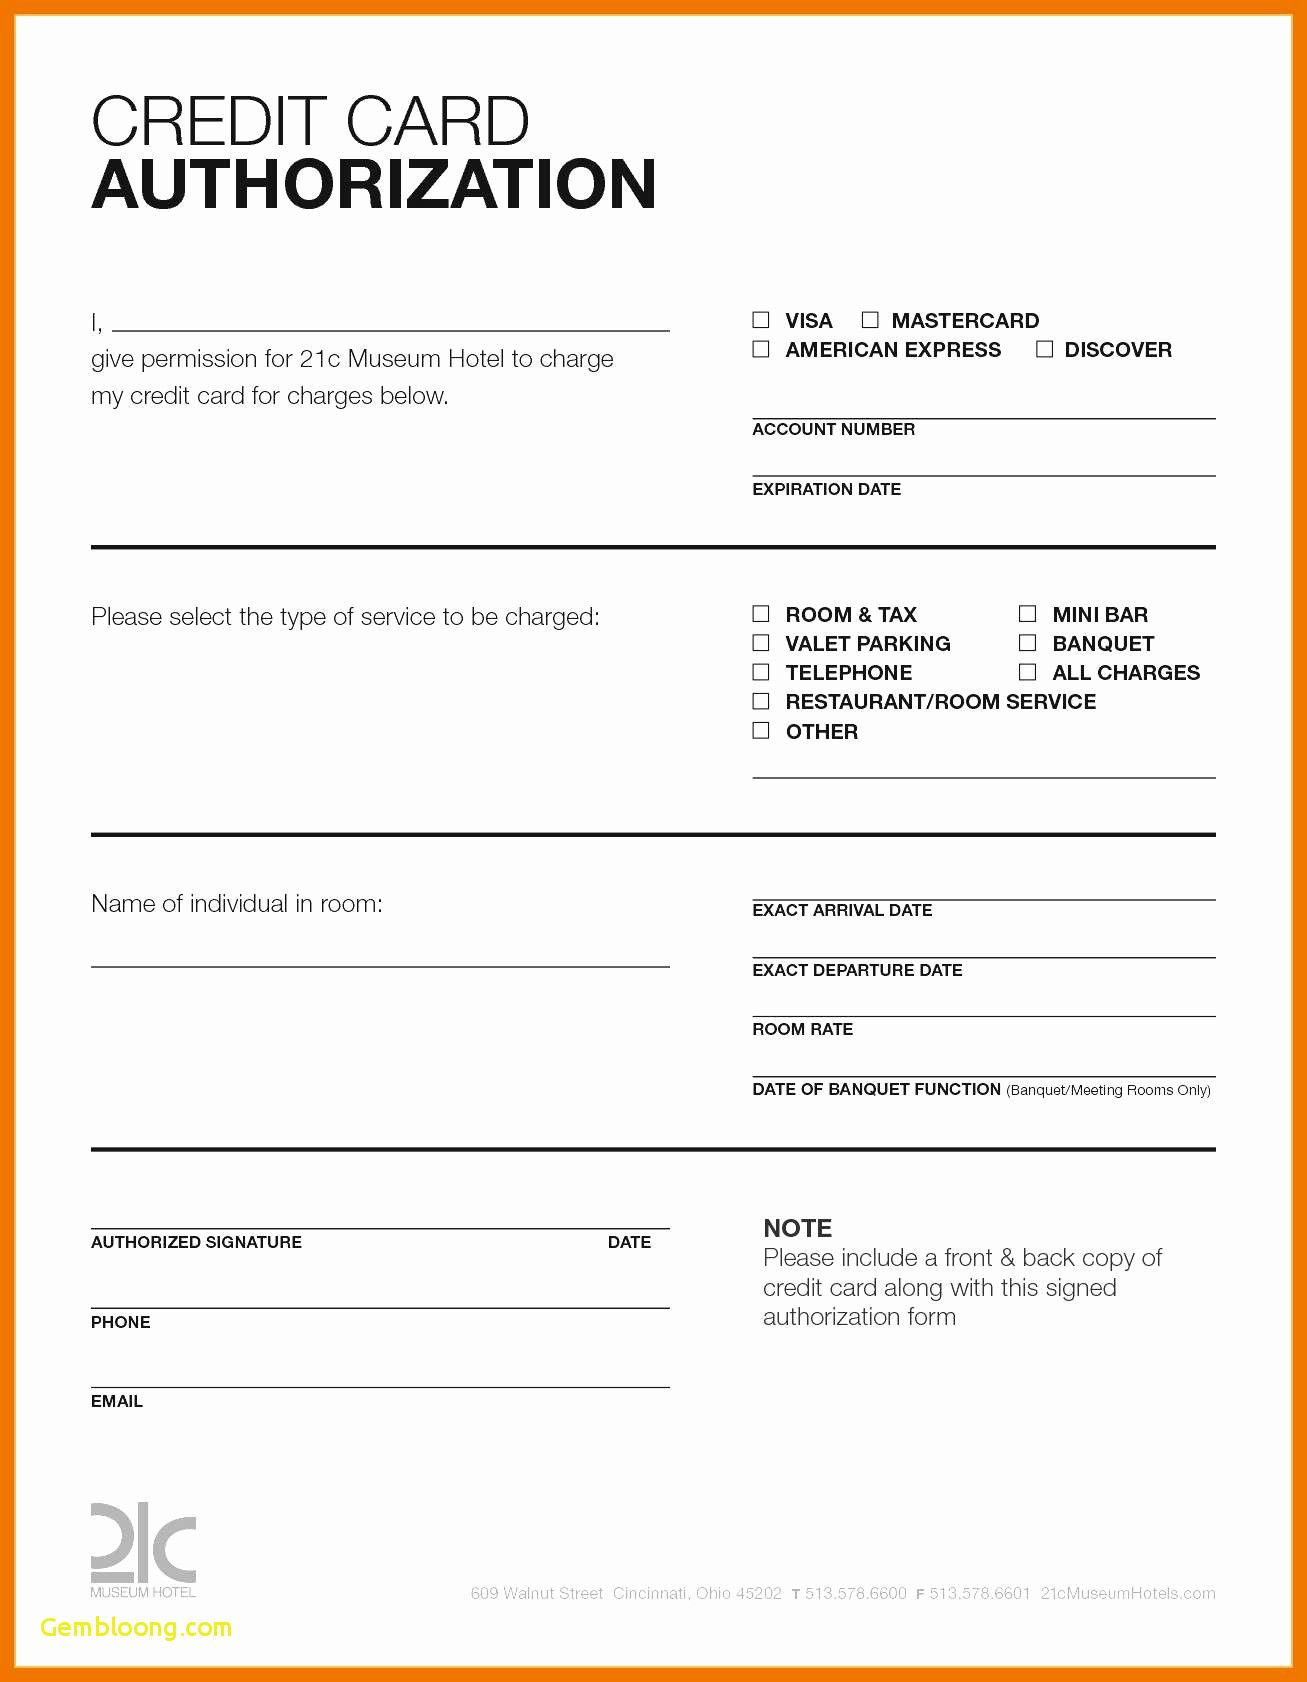 Hotel Credit Card Authorization Form Template Elegant Within Credit Card Payment Form Template Pdf Cumed Org Hotel Credit Cards Words Discover Credit Card